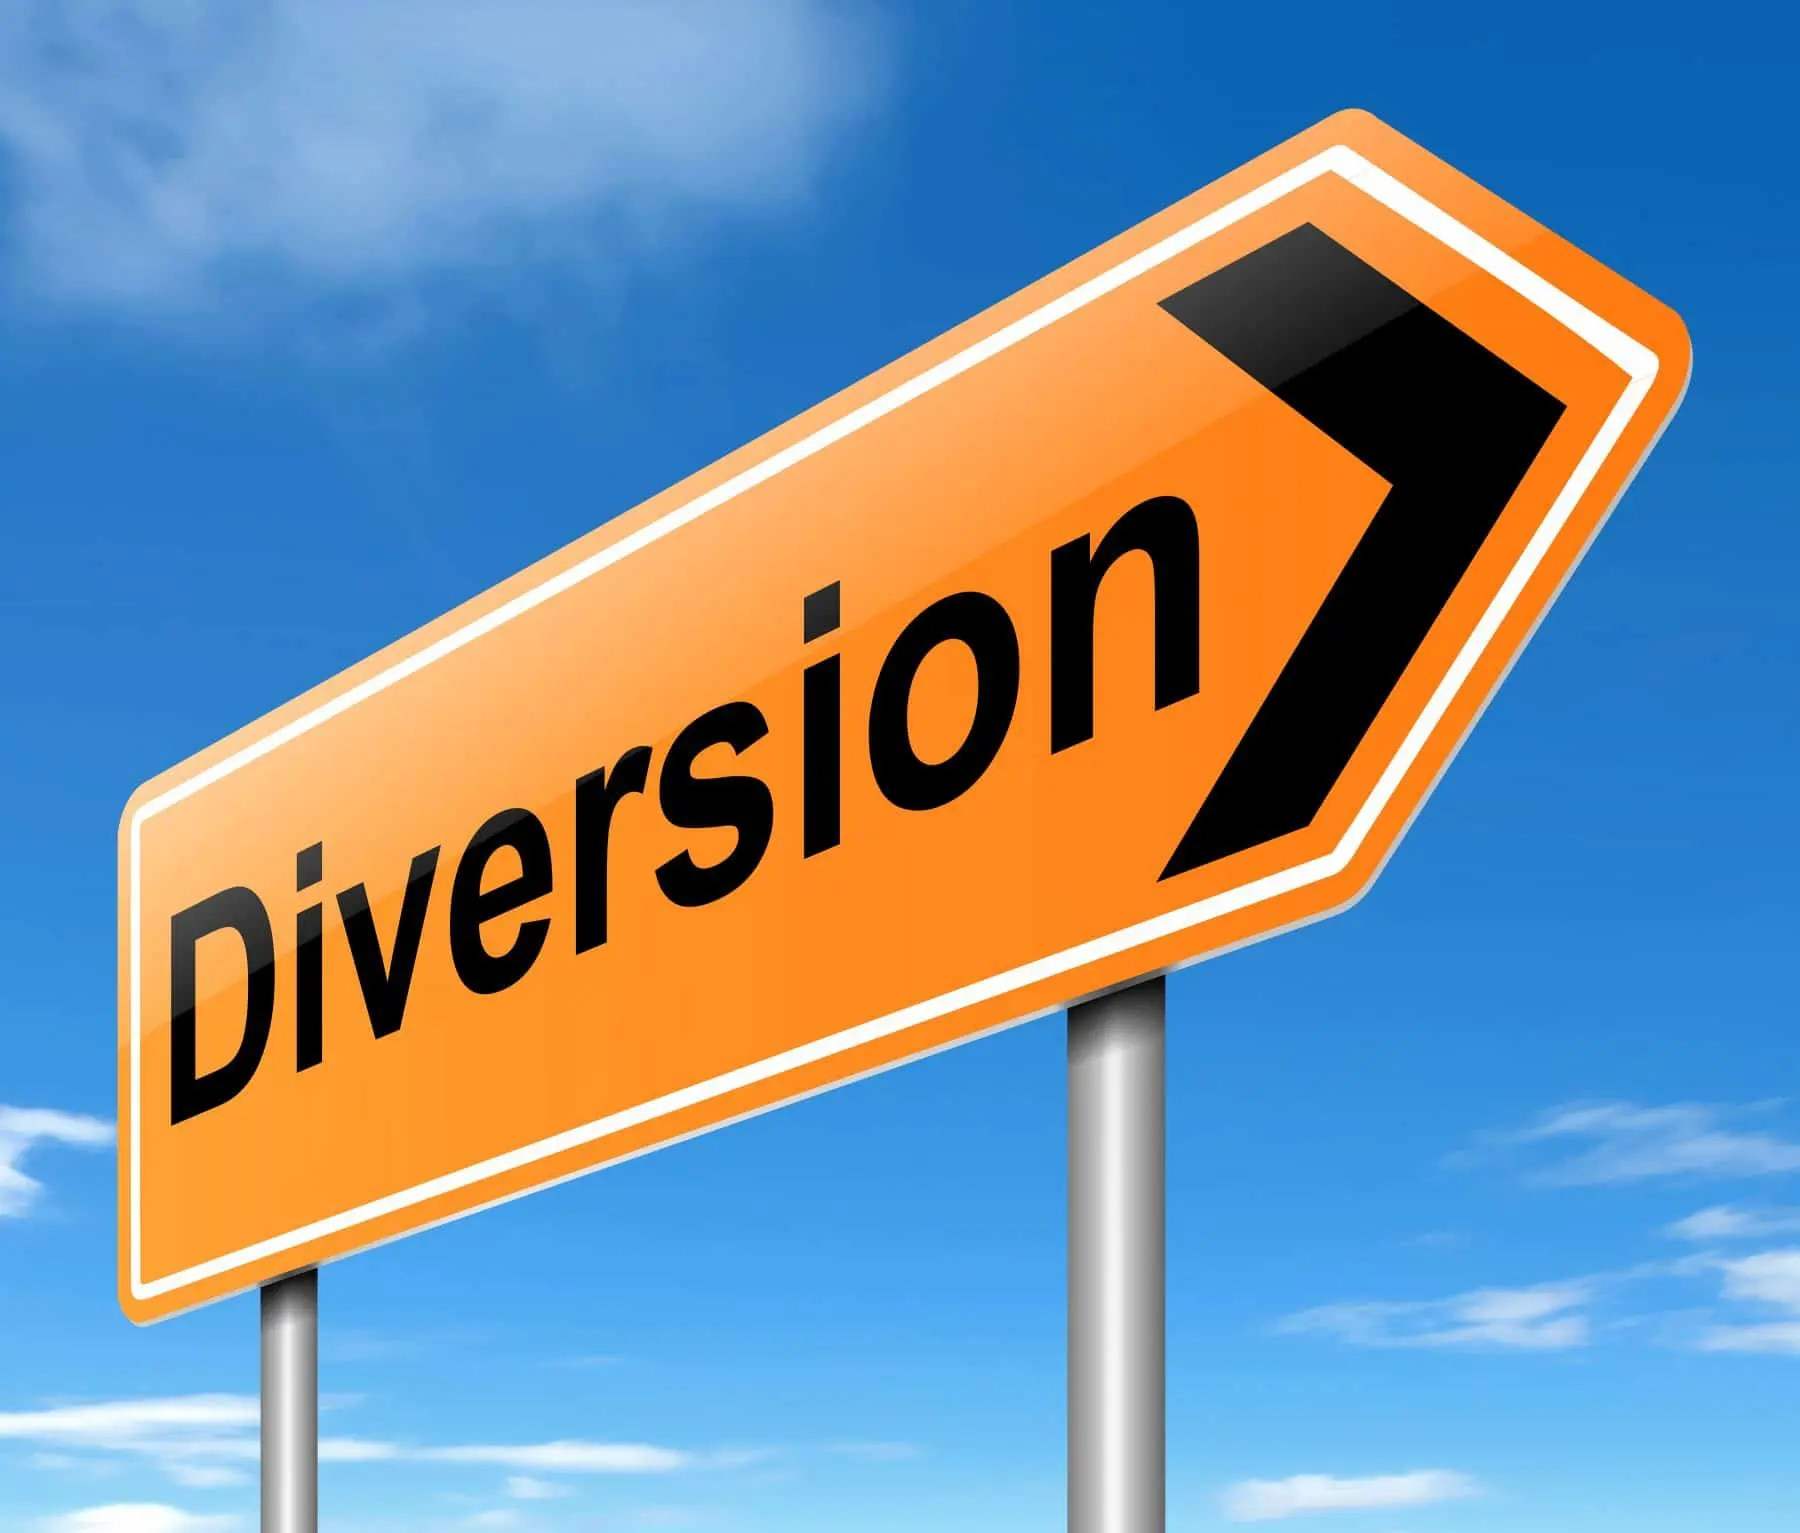 Traffic or Misdemeanor case diversion in DC